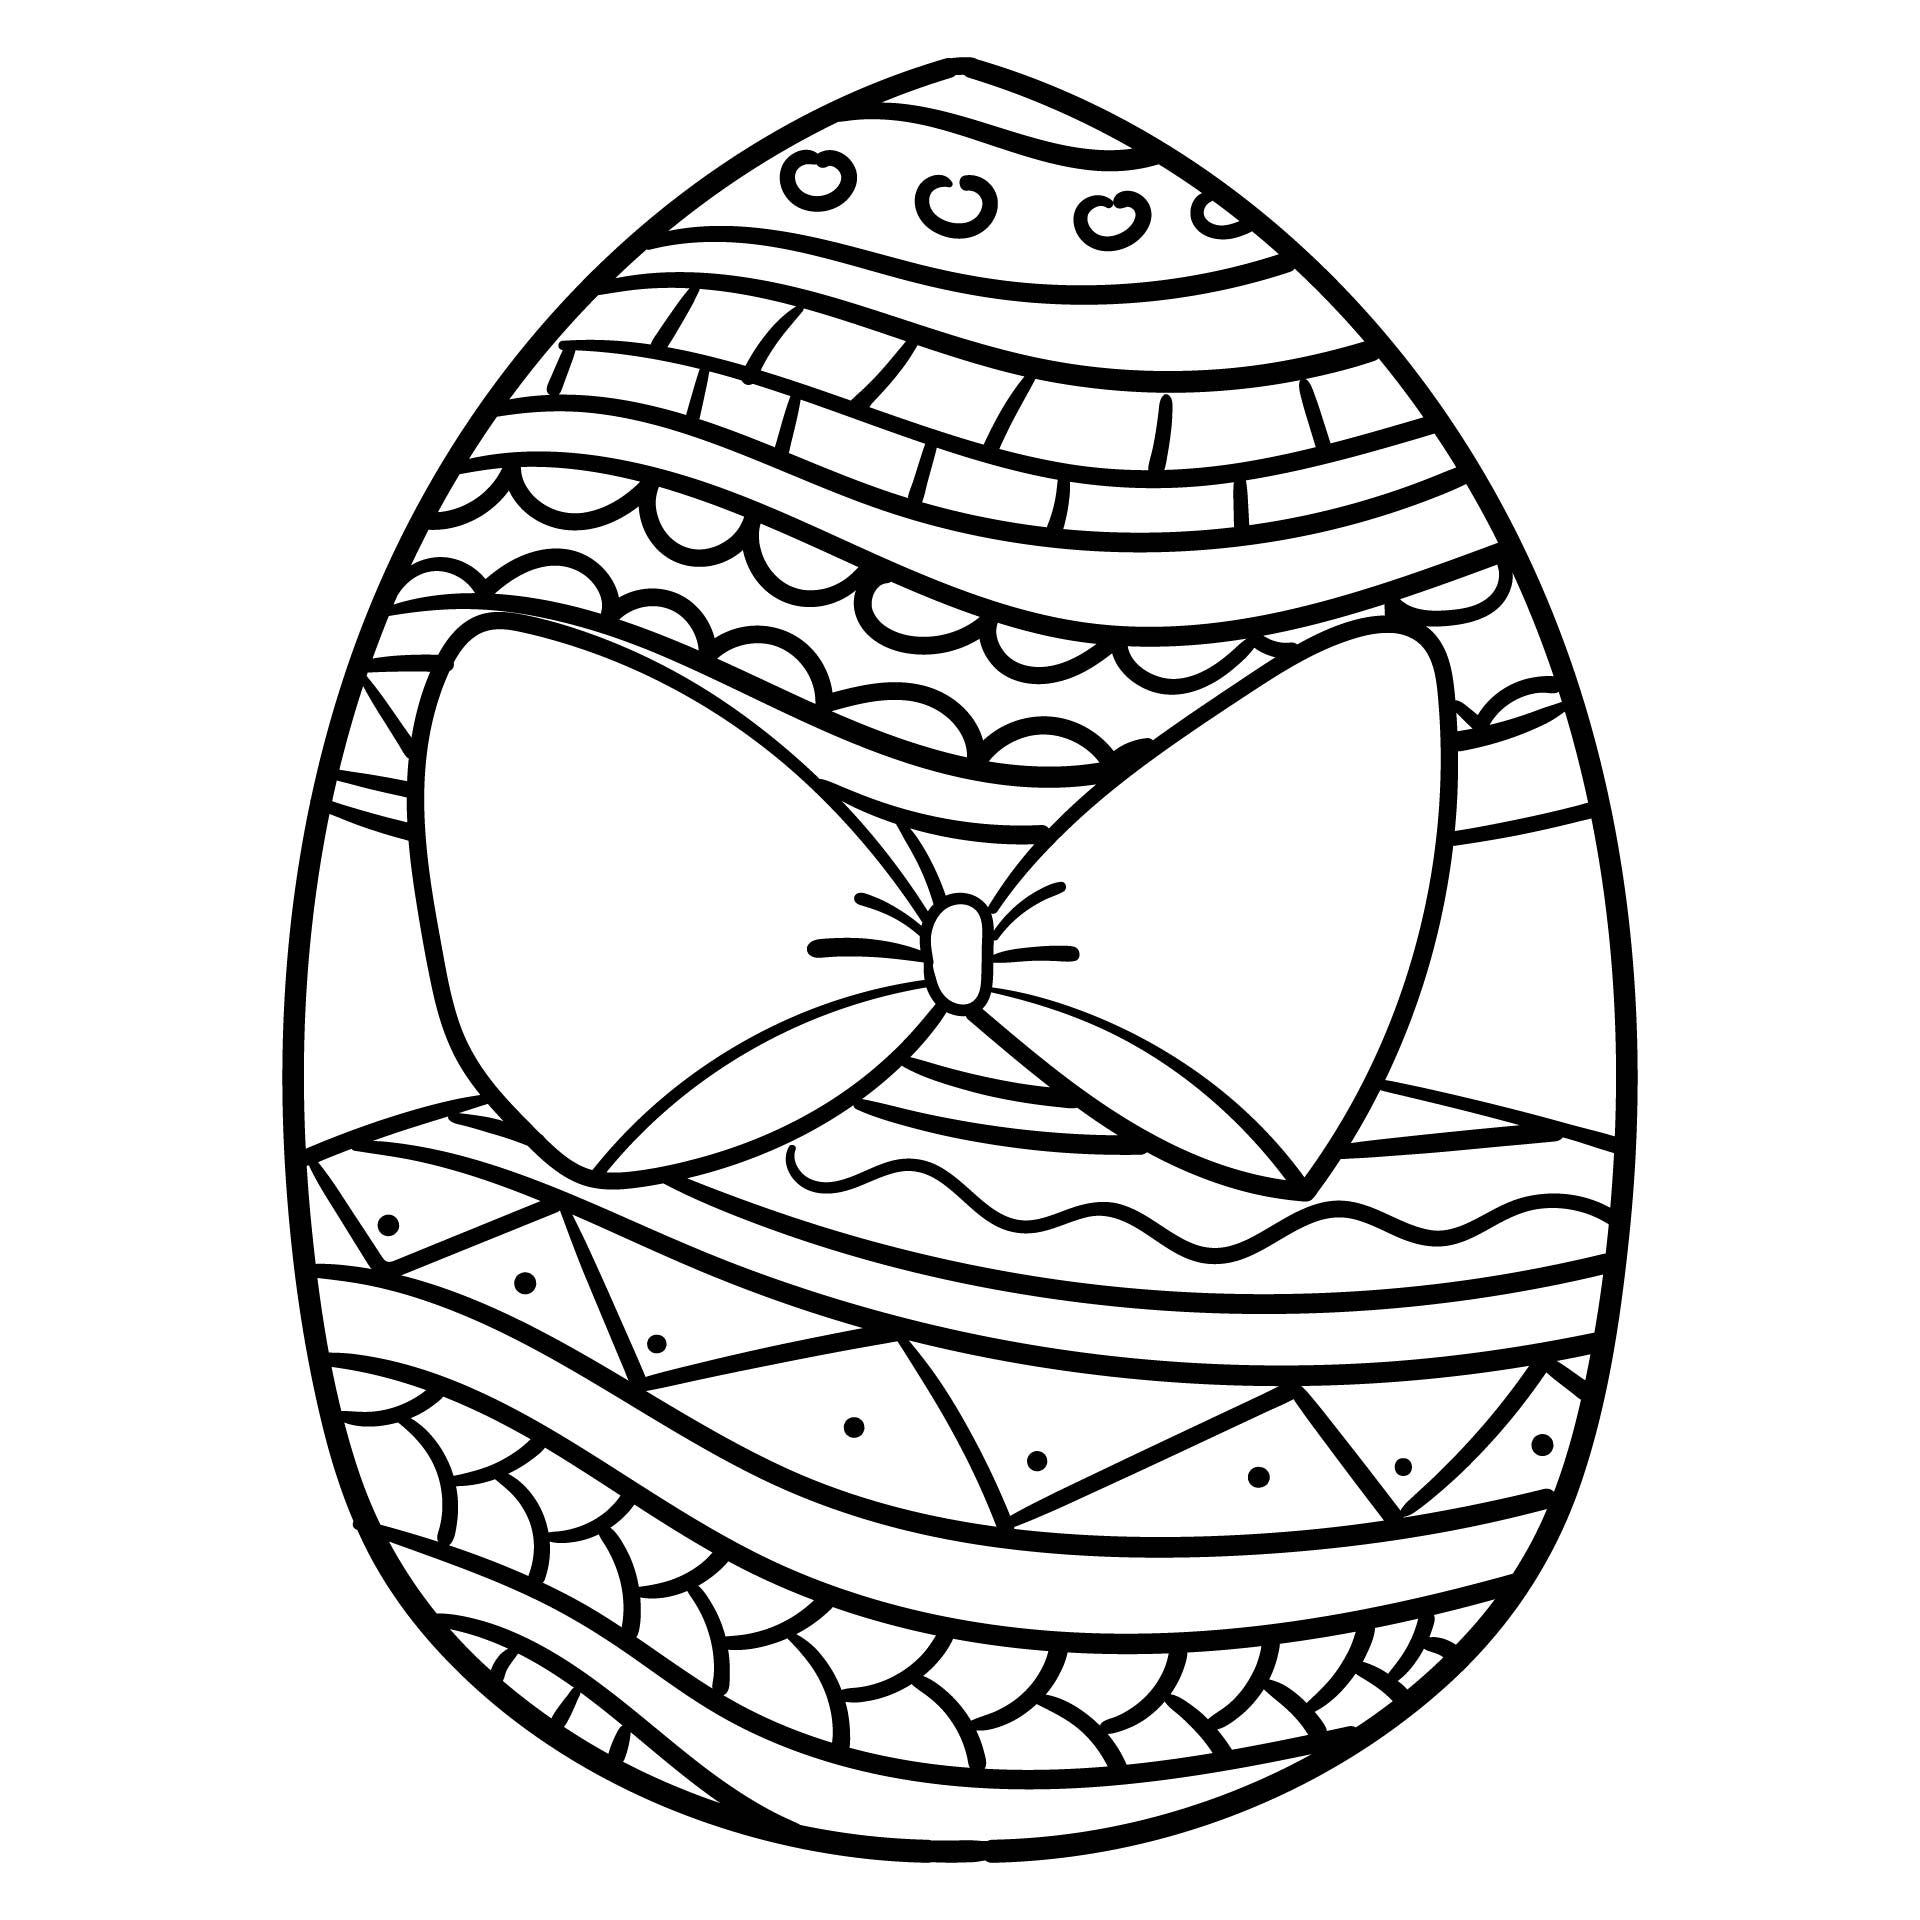 7 Images of Free Printable Easter Egg Coloring Pages